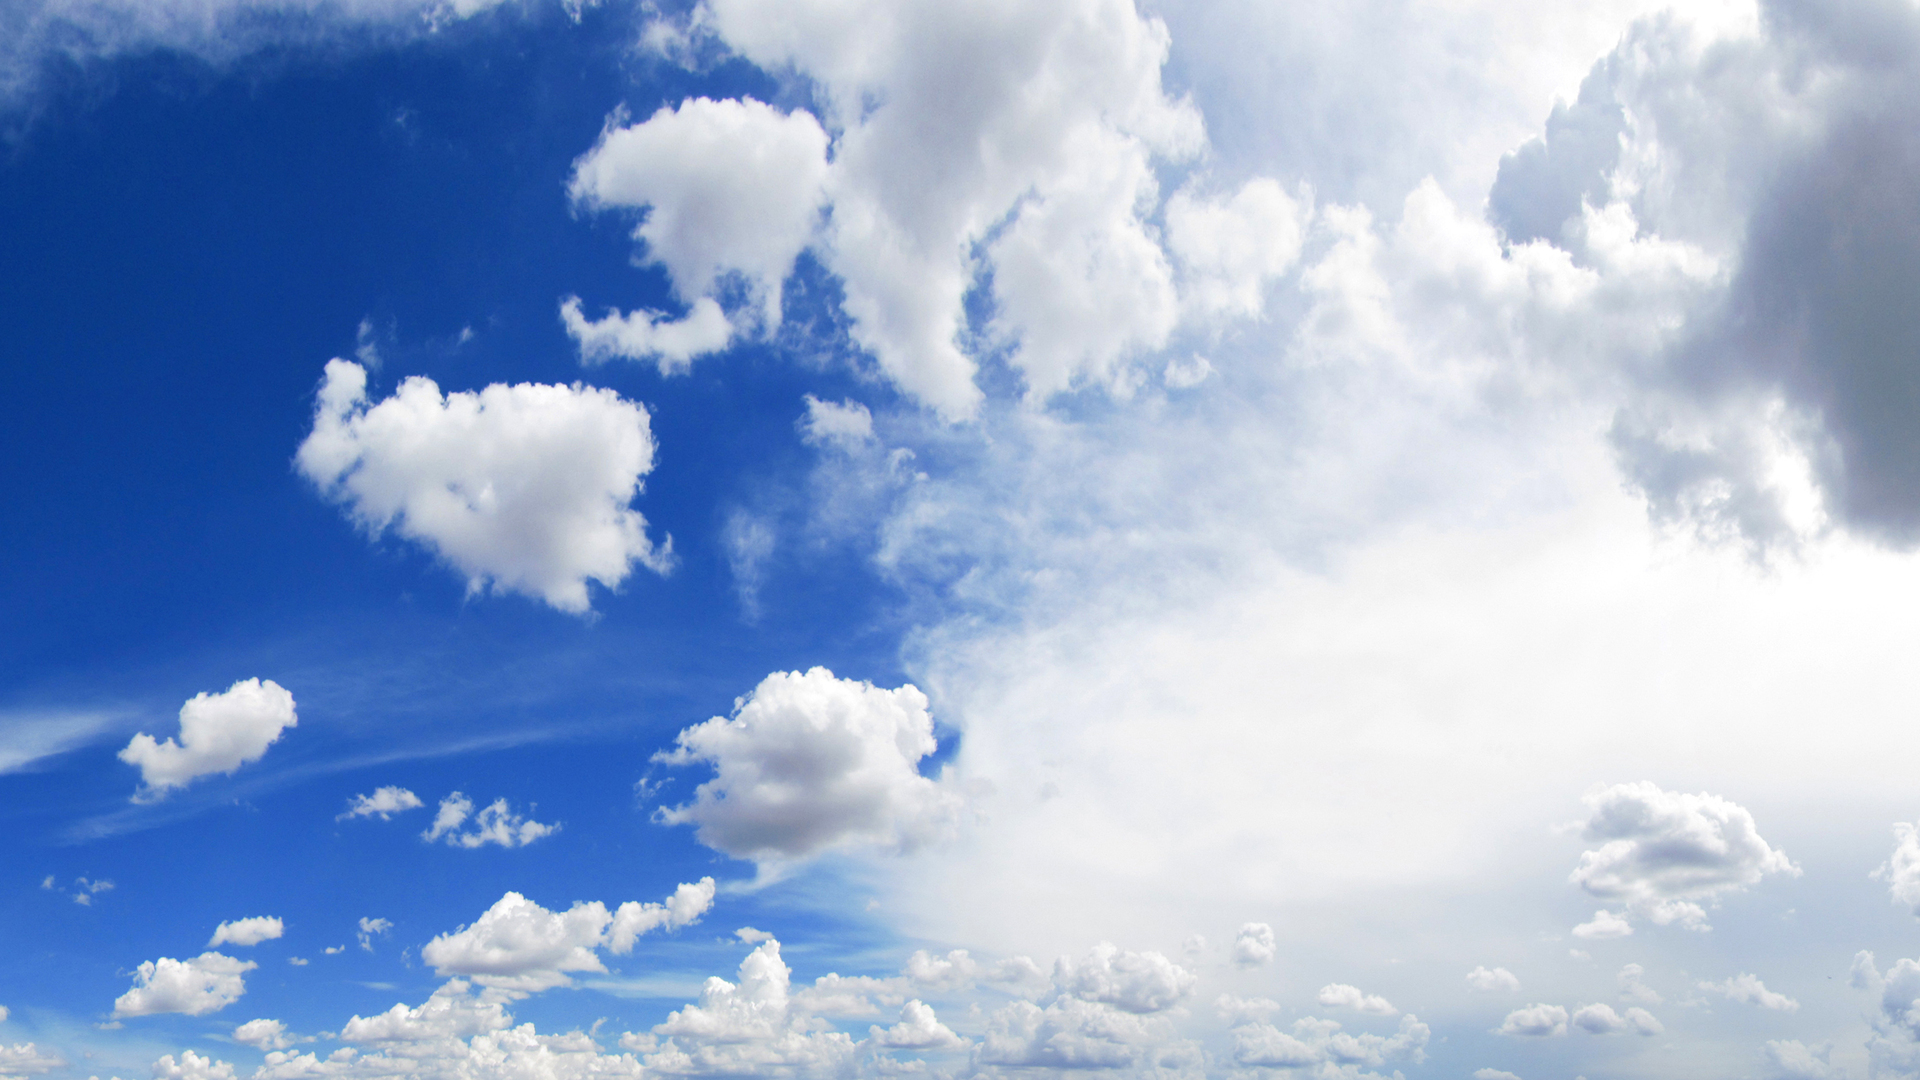 Cloud Hd Wallpaper Background Image 1920x1080 Id